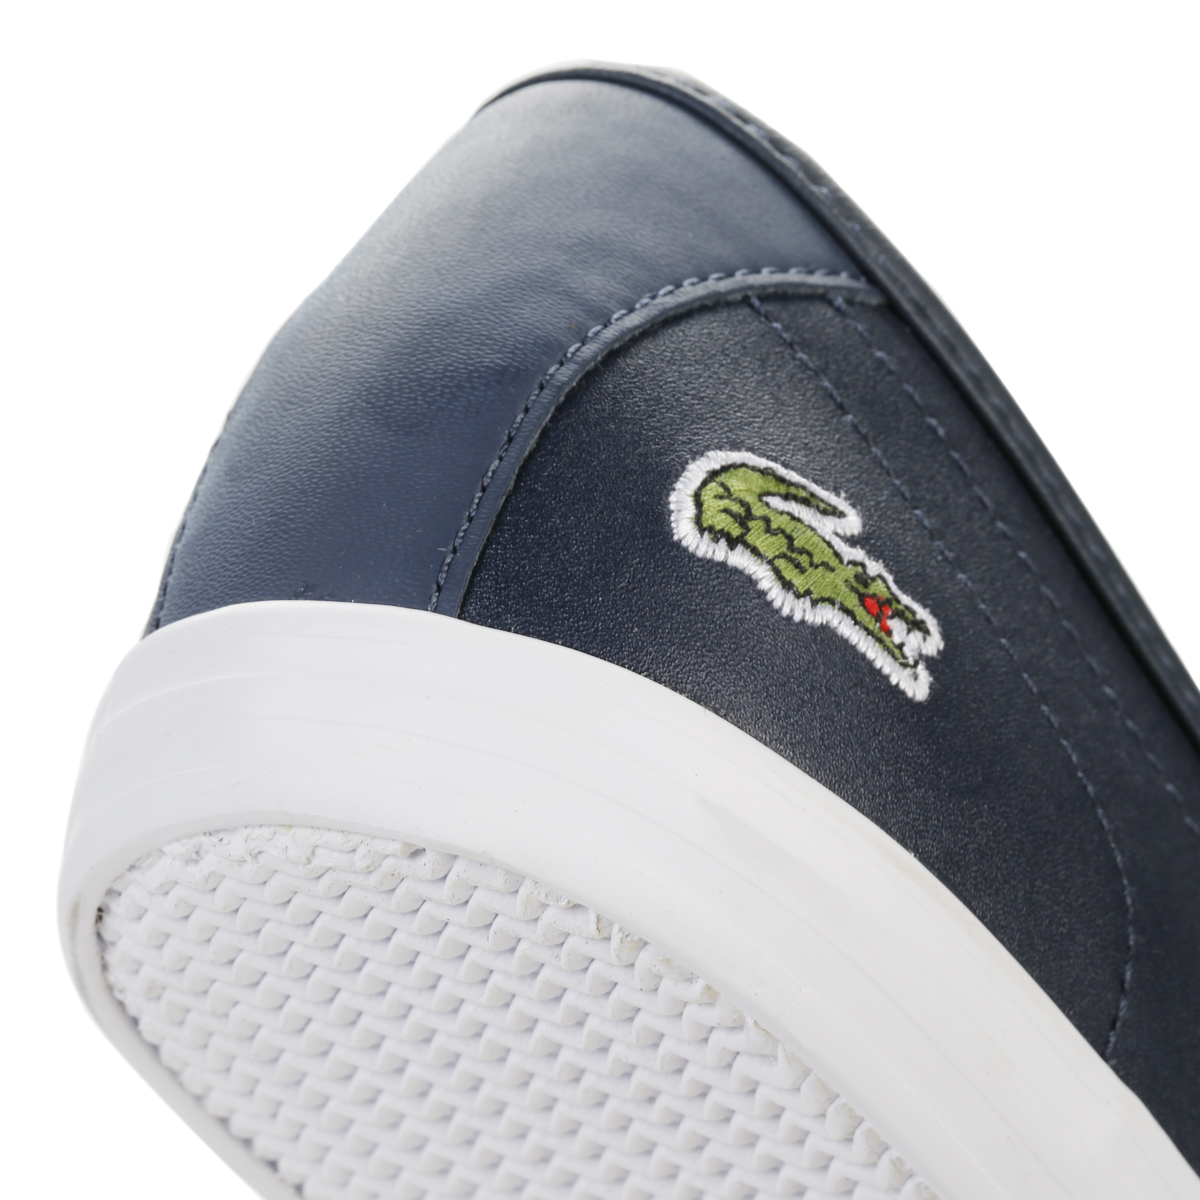 b3d20bad722e4 Lacoste Womens Navy Blue Ziane BL 1 SPW Trainers Leather Casual ...